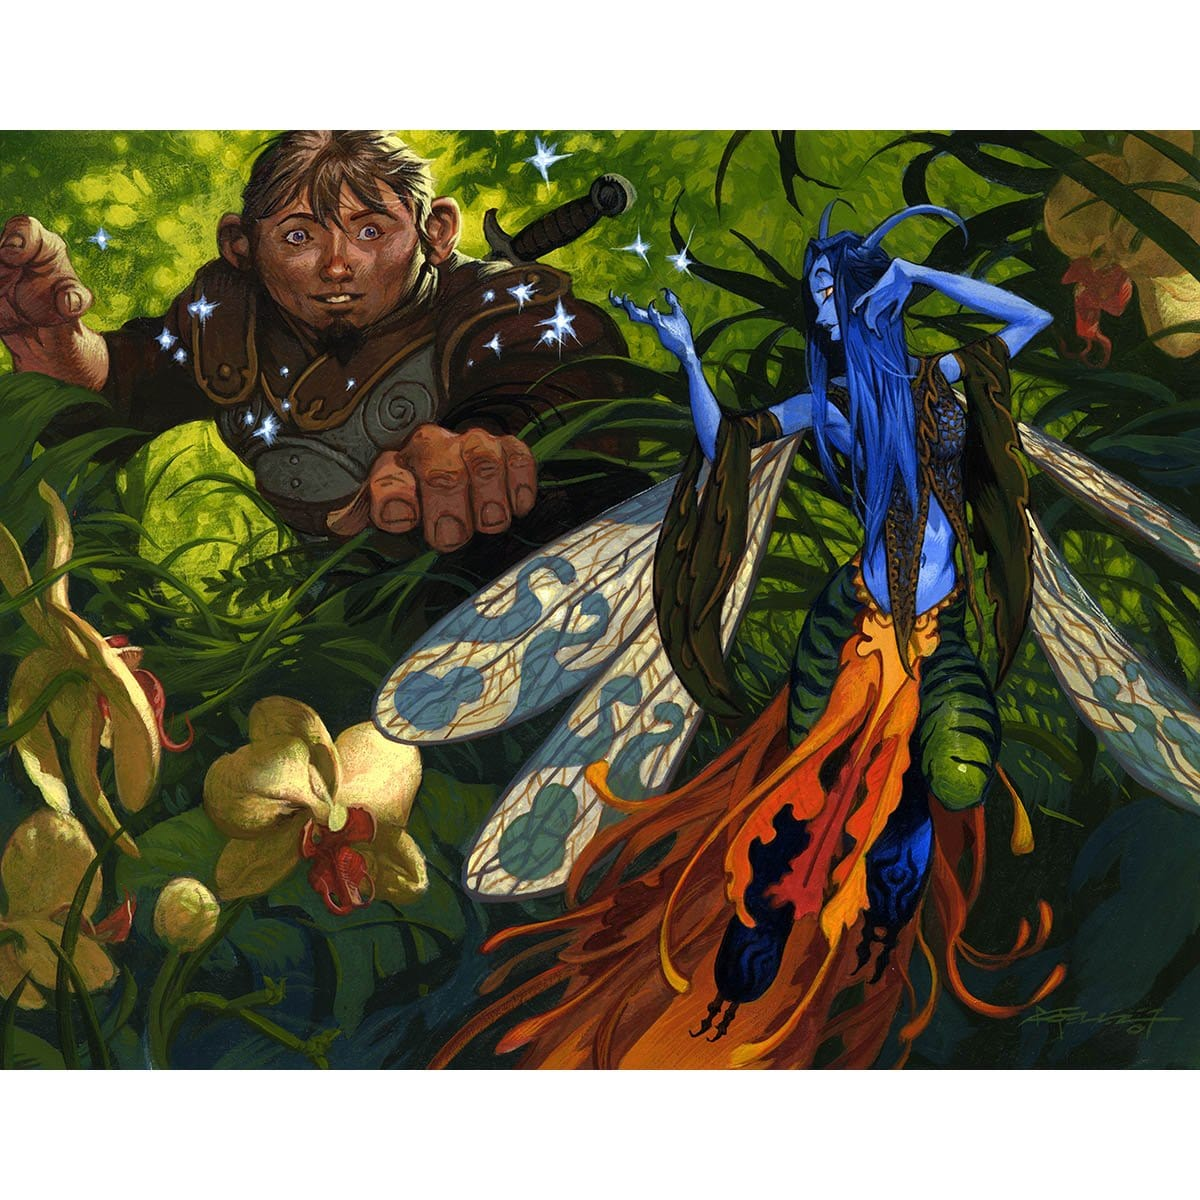 Sower of Temptation Print - Print - Original Magic Art - Accessories for Magic the Gathering and other card games